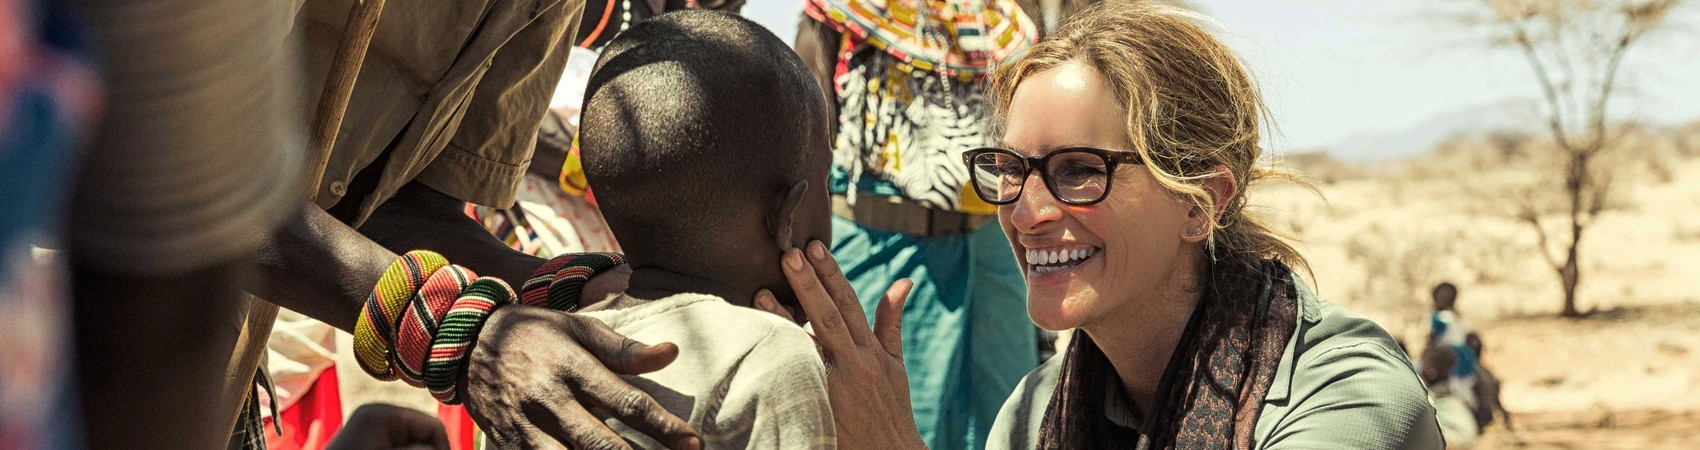 Julia Roberts national immunization awareness month